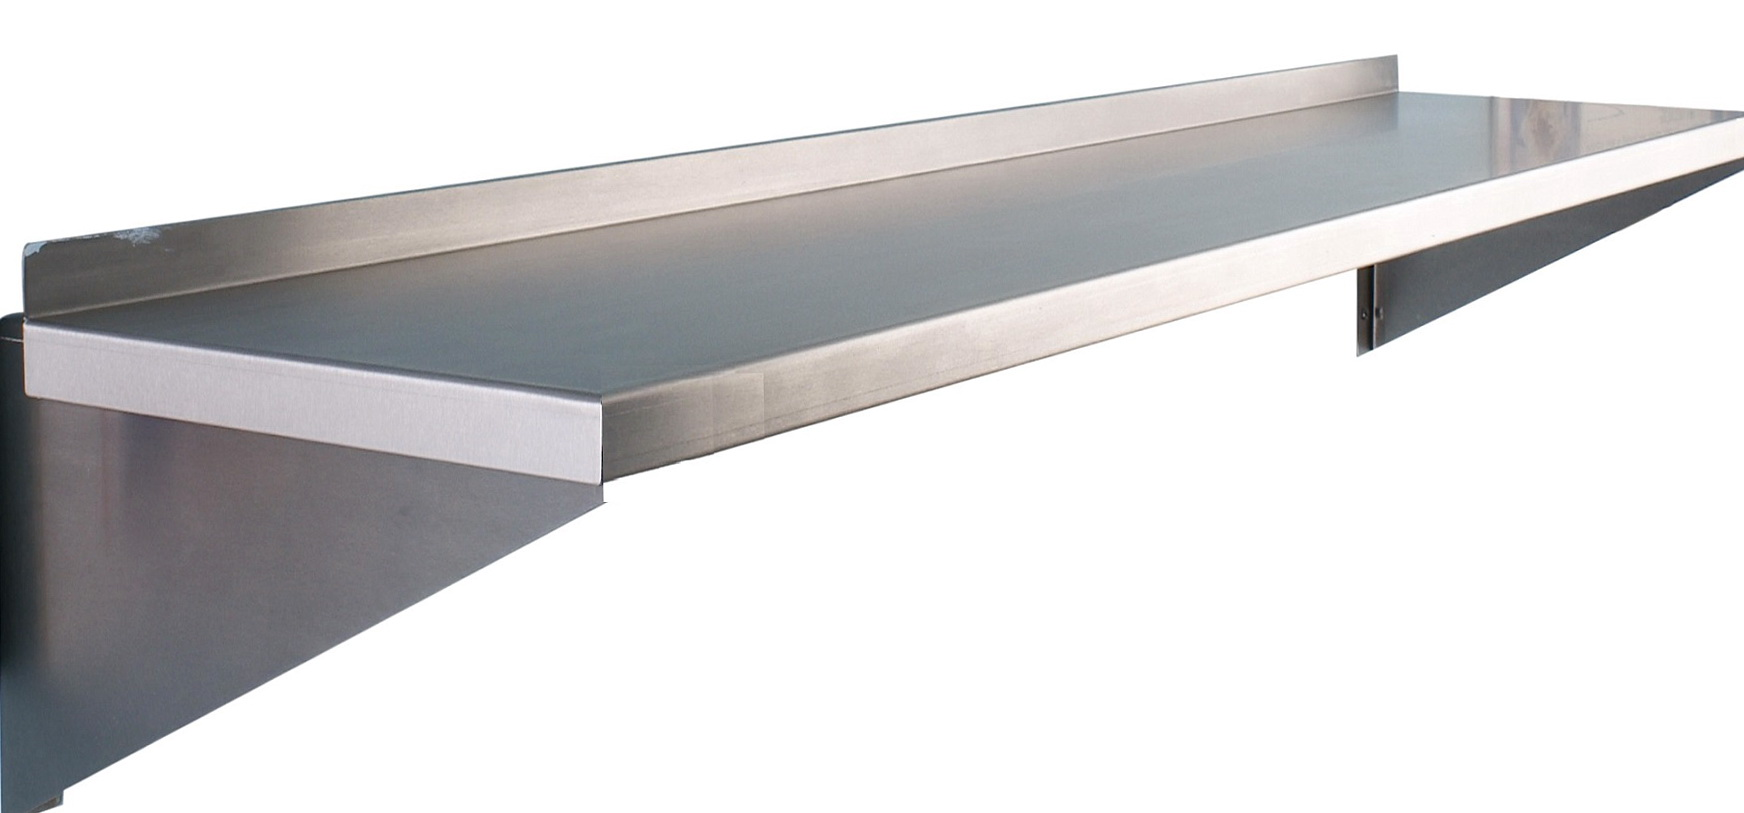 Stainless Steel Wall Shelves For Kitchen